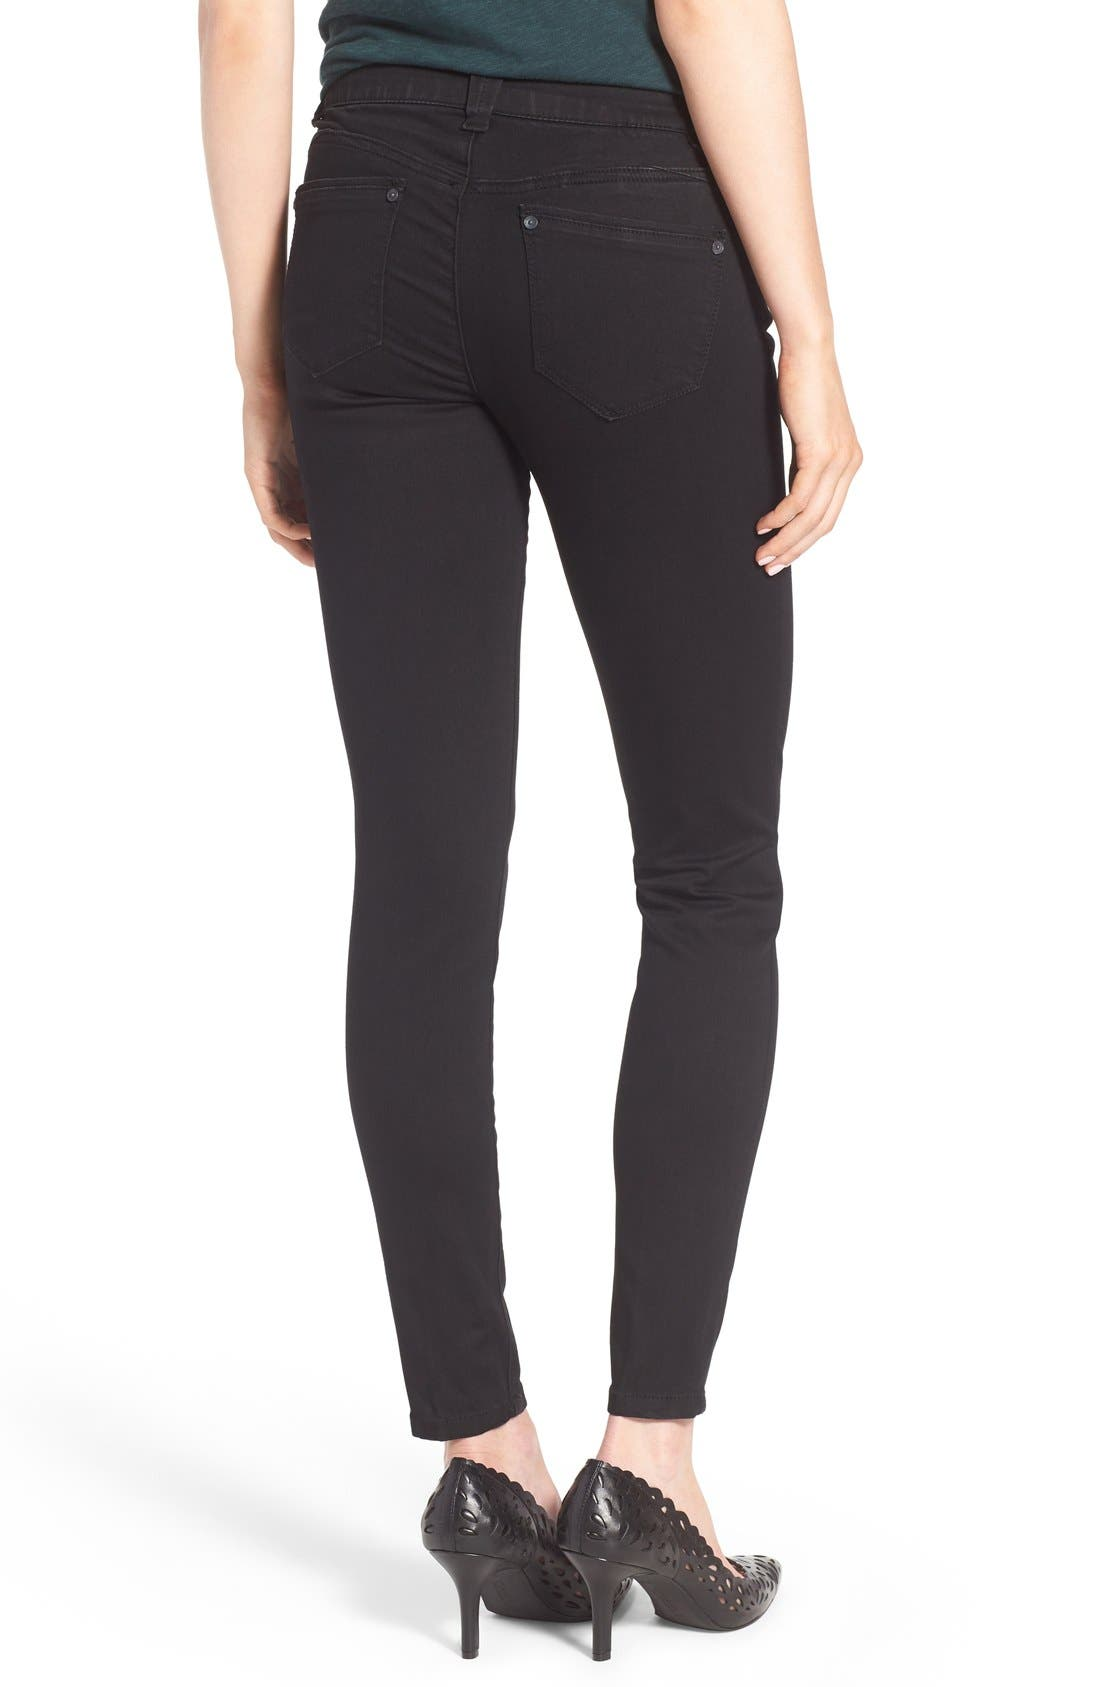 Ab-solution Stretch Skinny Jeans,                             Alternate thumbnail 2, color,                             Black